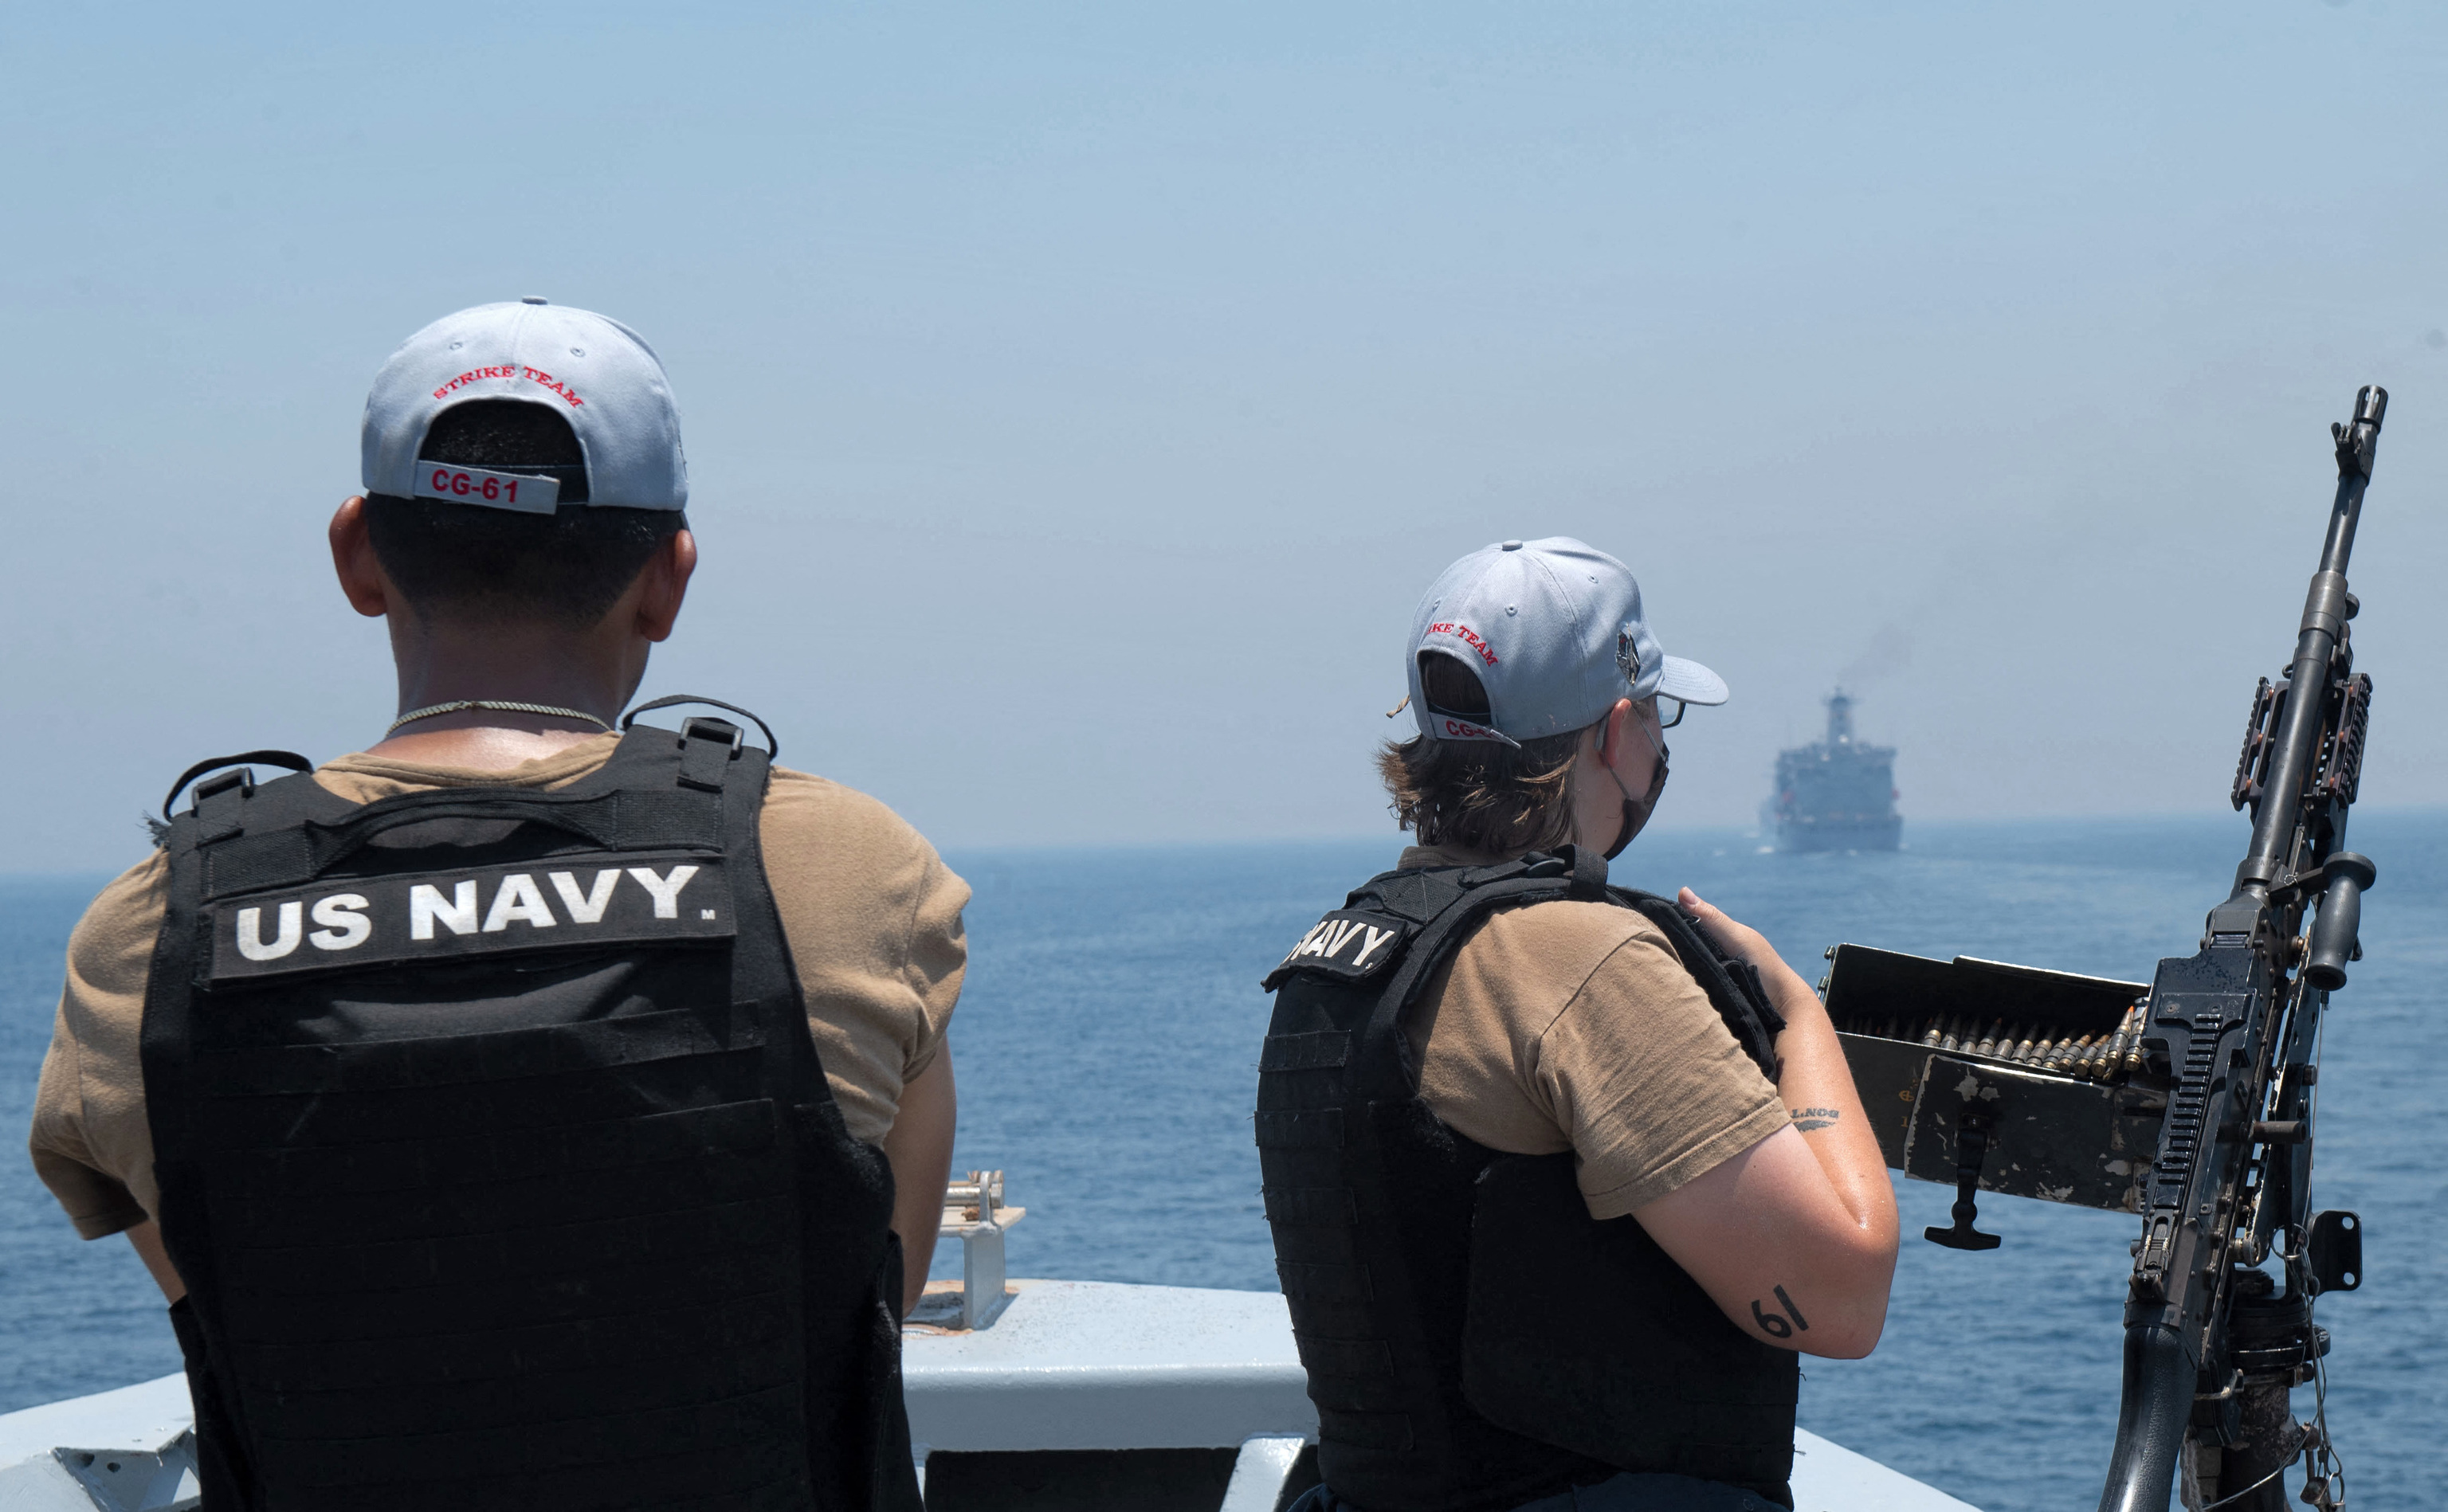 """This handout photo courtesy of US Navy and made available on June 3, 2021 shows US Navy personnel aboard the guided-missile cruiser USS Monterey (CG 61) looking on while the vessel transits through the Strait of Hormuz. - A Japanese-owned oil tanker that came under deadly attack off the coast of  lt;HIT gt;Oman lt;/HIT gt; is back sailing under her crew's control, its Israeli operator said on July 30. """"We can now confirm that the M/T Mercer Street is sailing under the control of her crew and under her own power at 14 knots to a safe location with a US naval escort,"""" Zodiac Maritime wrote on its Twitter page. (Photo by Chelsea PALMER / US NAVY / AFP) / XGTY / RESTRICTED TO EDITORIAL USE - MANDATORY CREDIT """"AFP PHOTO / US NAVY """" - NO MARKETING - NO ADVERTISING CAMPAIGNS - DISTRIBUTED AS A SERVICE TO CLIENTS"""